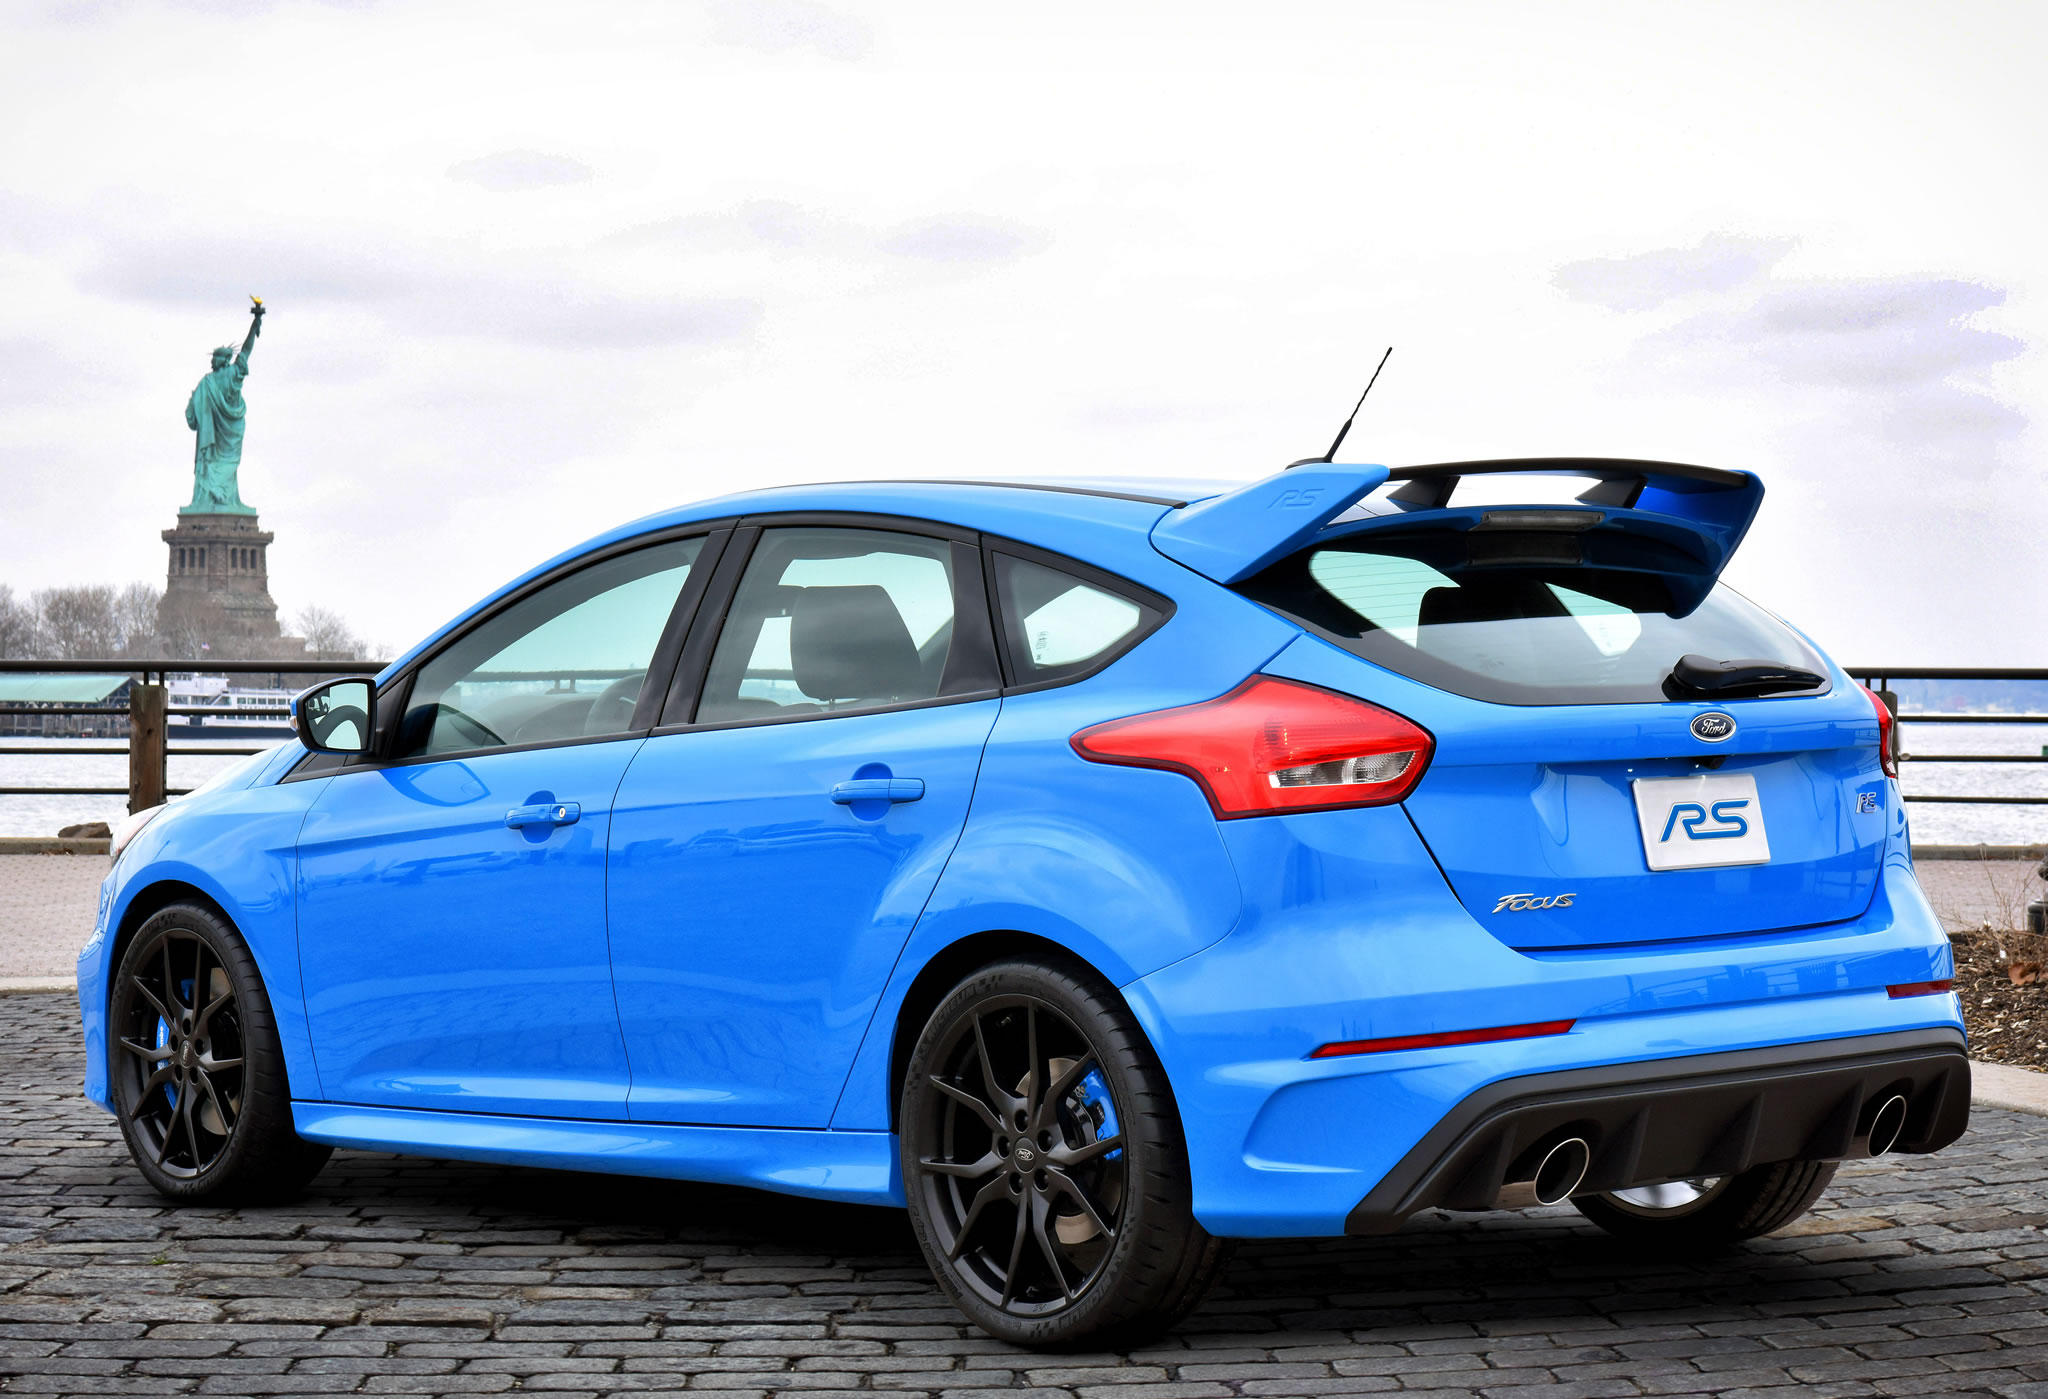 2016 Ford Focus Rs Rear Photo Statue Of Liberty